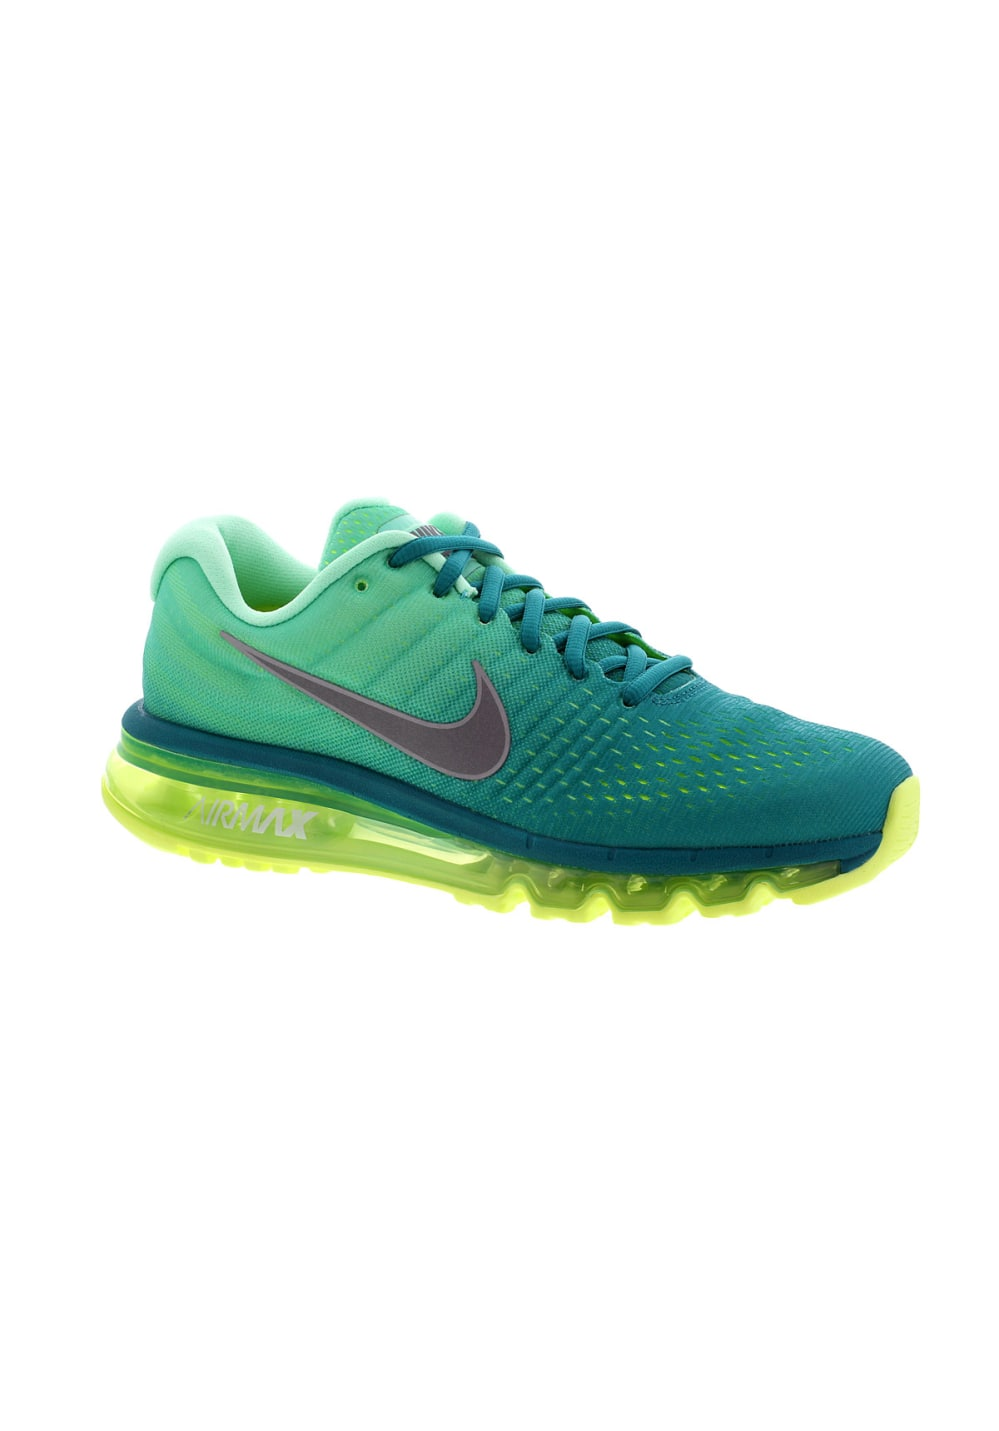 low priced ba1d7 91571 Nike Air Max 2017 - Running shoes for Women - Blue